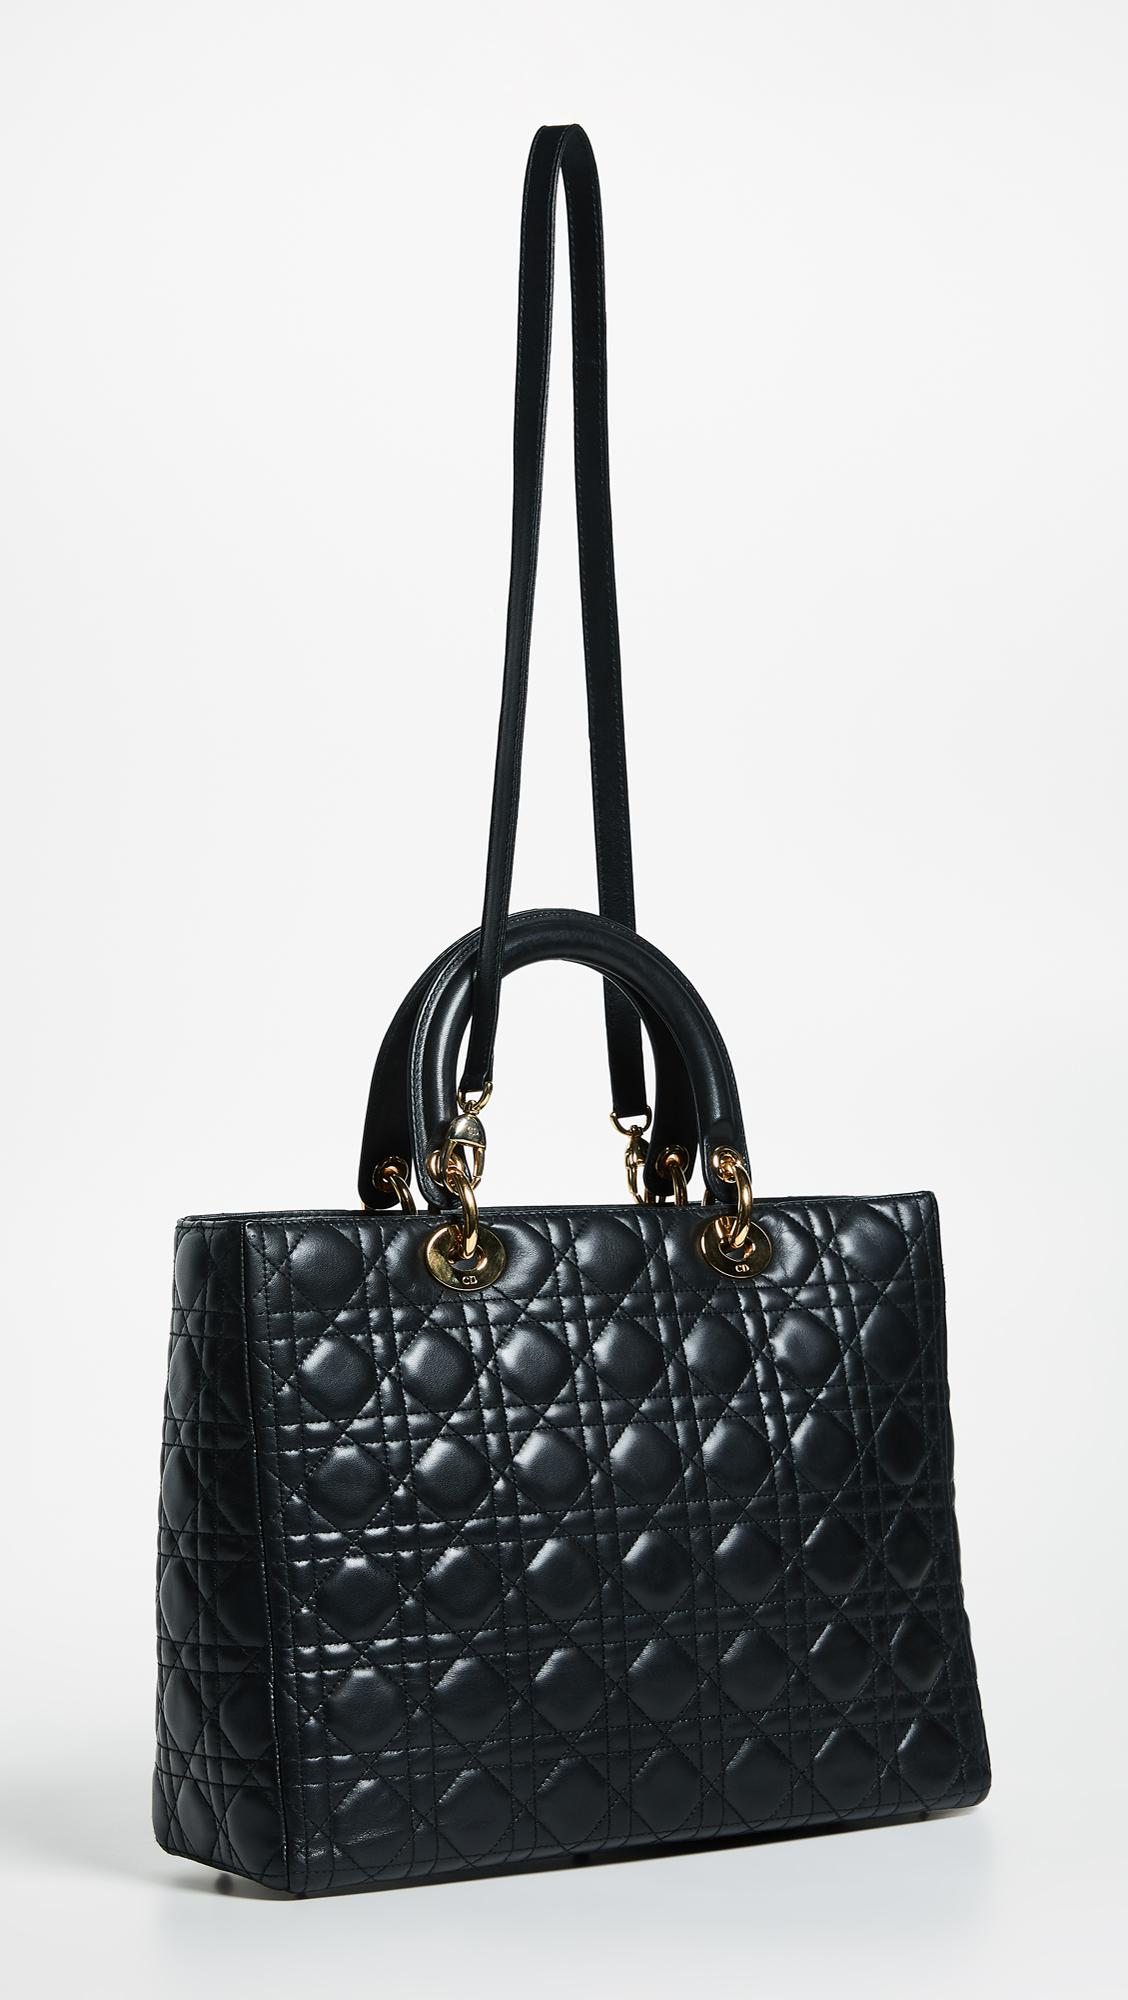 e0c85bf73518 What Goes Around Comes Around - Black Dior Lady Dior Bag - Lyst. View  fullscreen